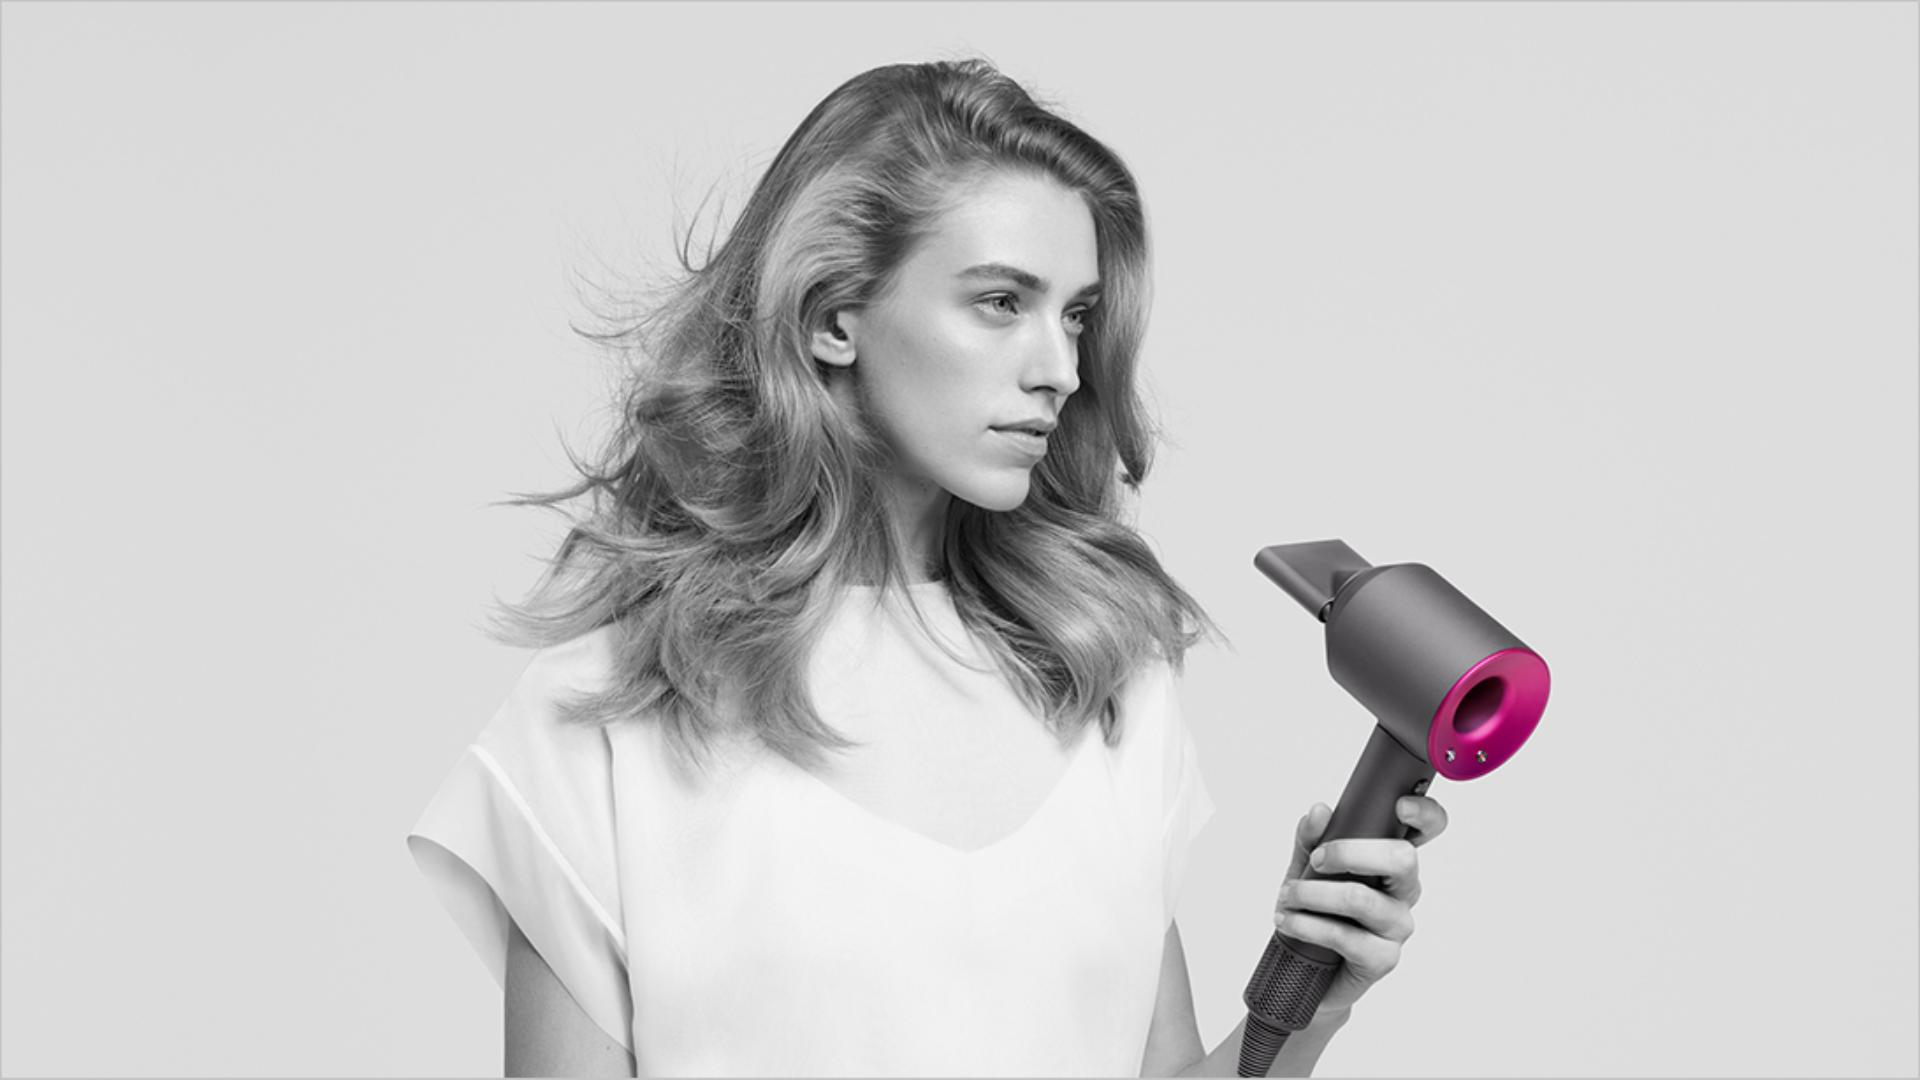 A model using the Dyson Supersonic hair dryer